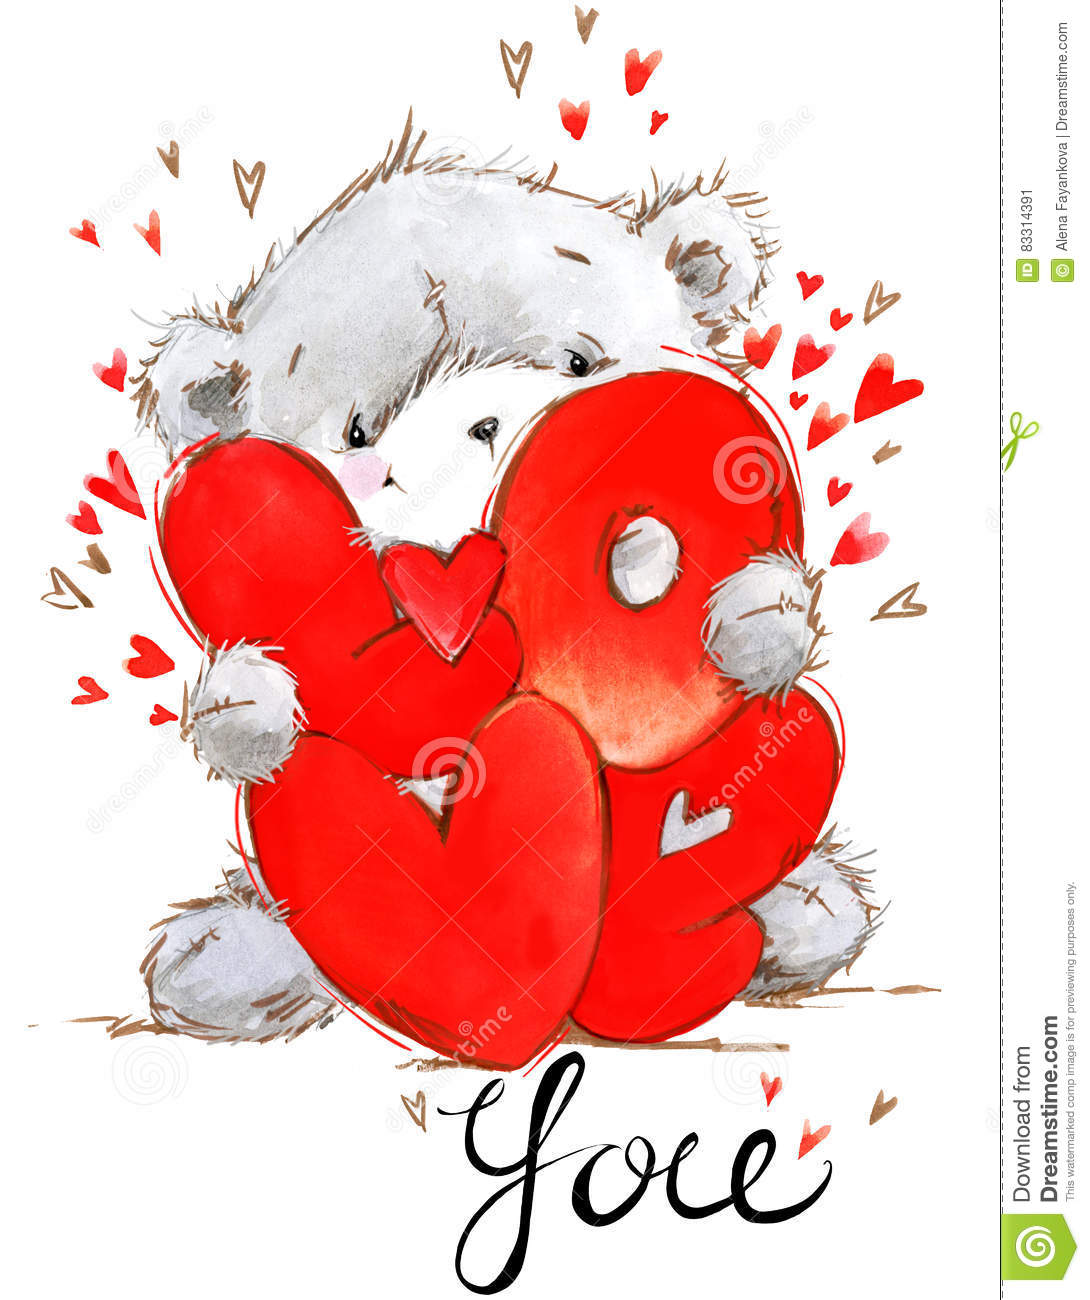 Cute Teddy Bear Love You Card Valentines Day Watercolor – Teddy Bear Valentines Day Card